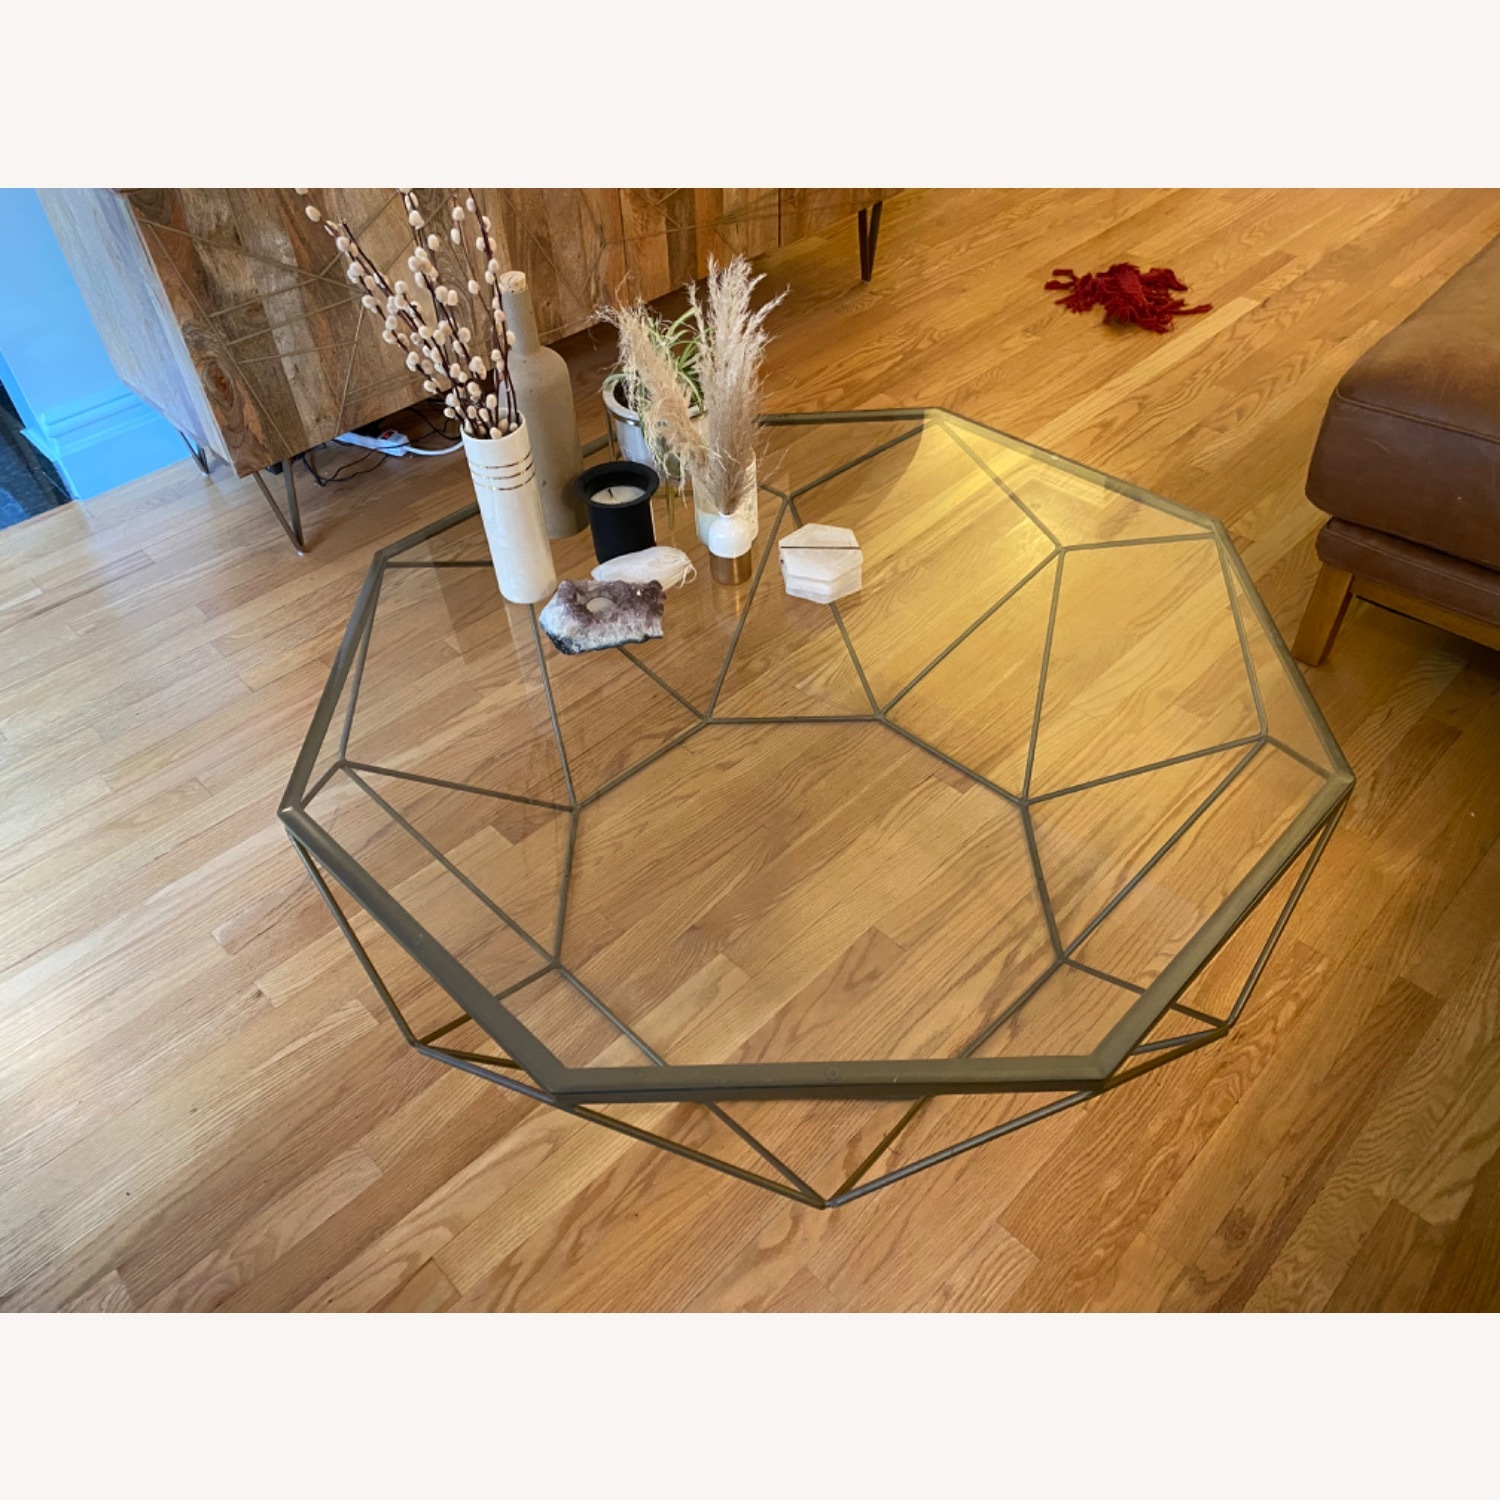 West Elm Geometric Glass Coffee Table - image-3